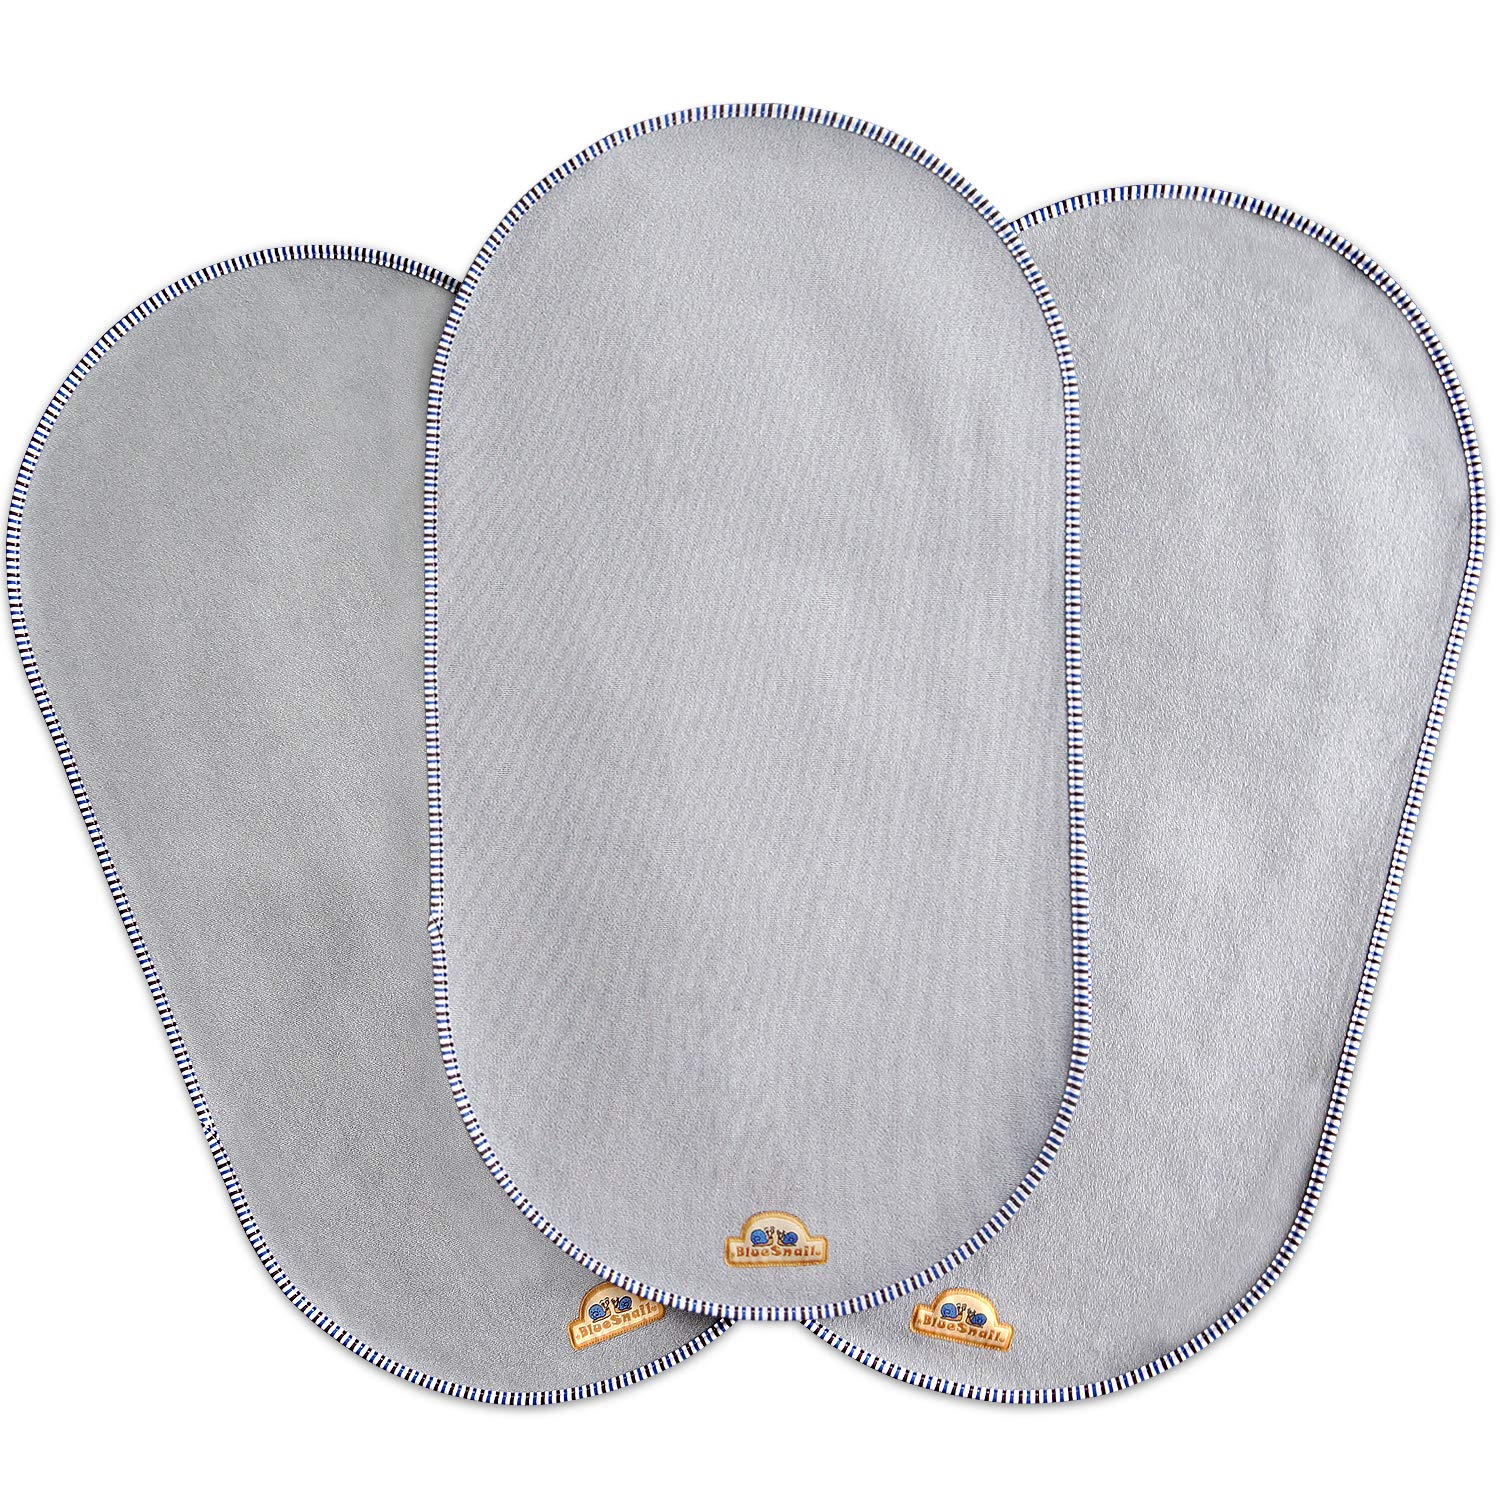 BlueSnail Waterproof Changing Pad Liners 3 Count Bassinet Pad Liner(14 X26.5 )